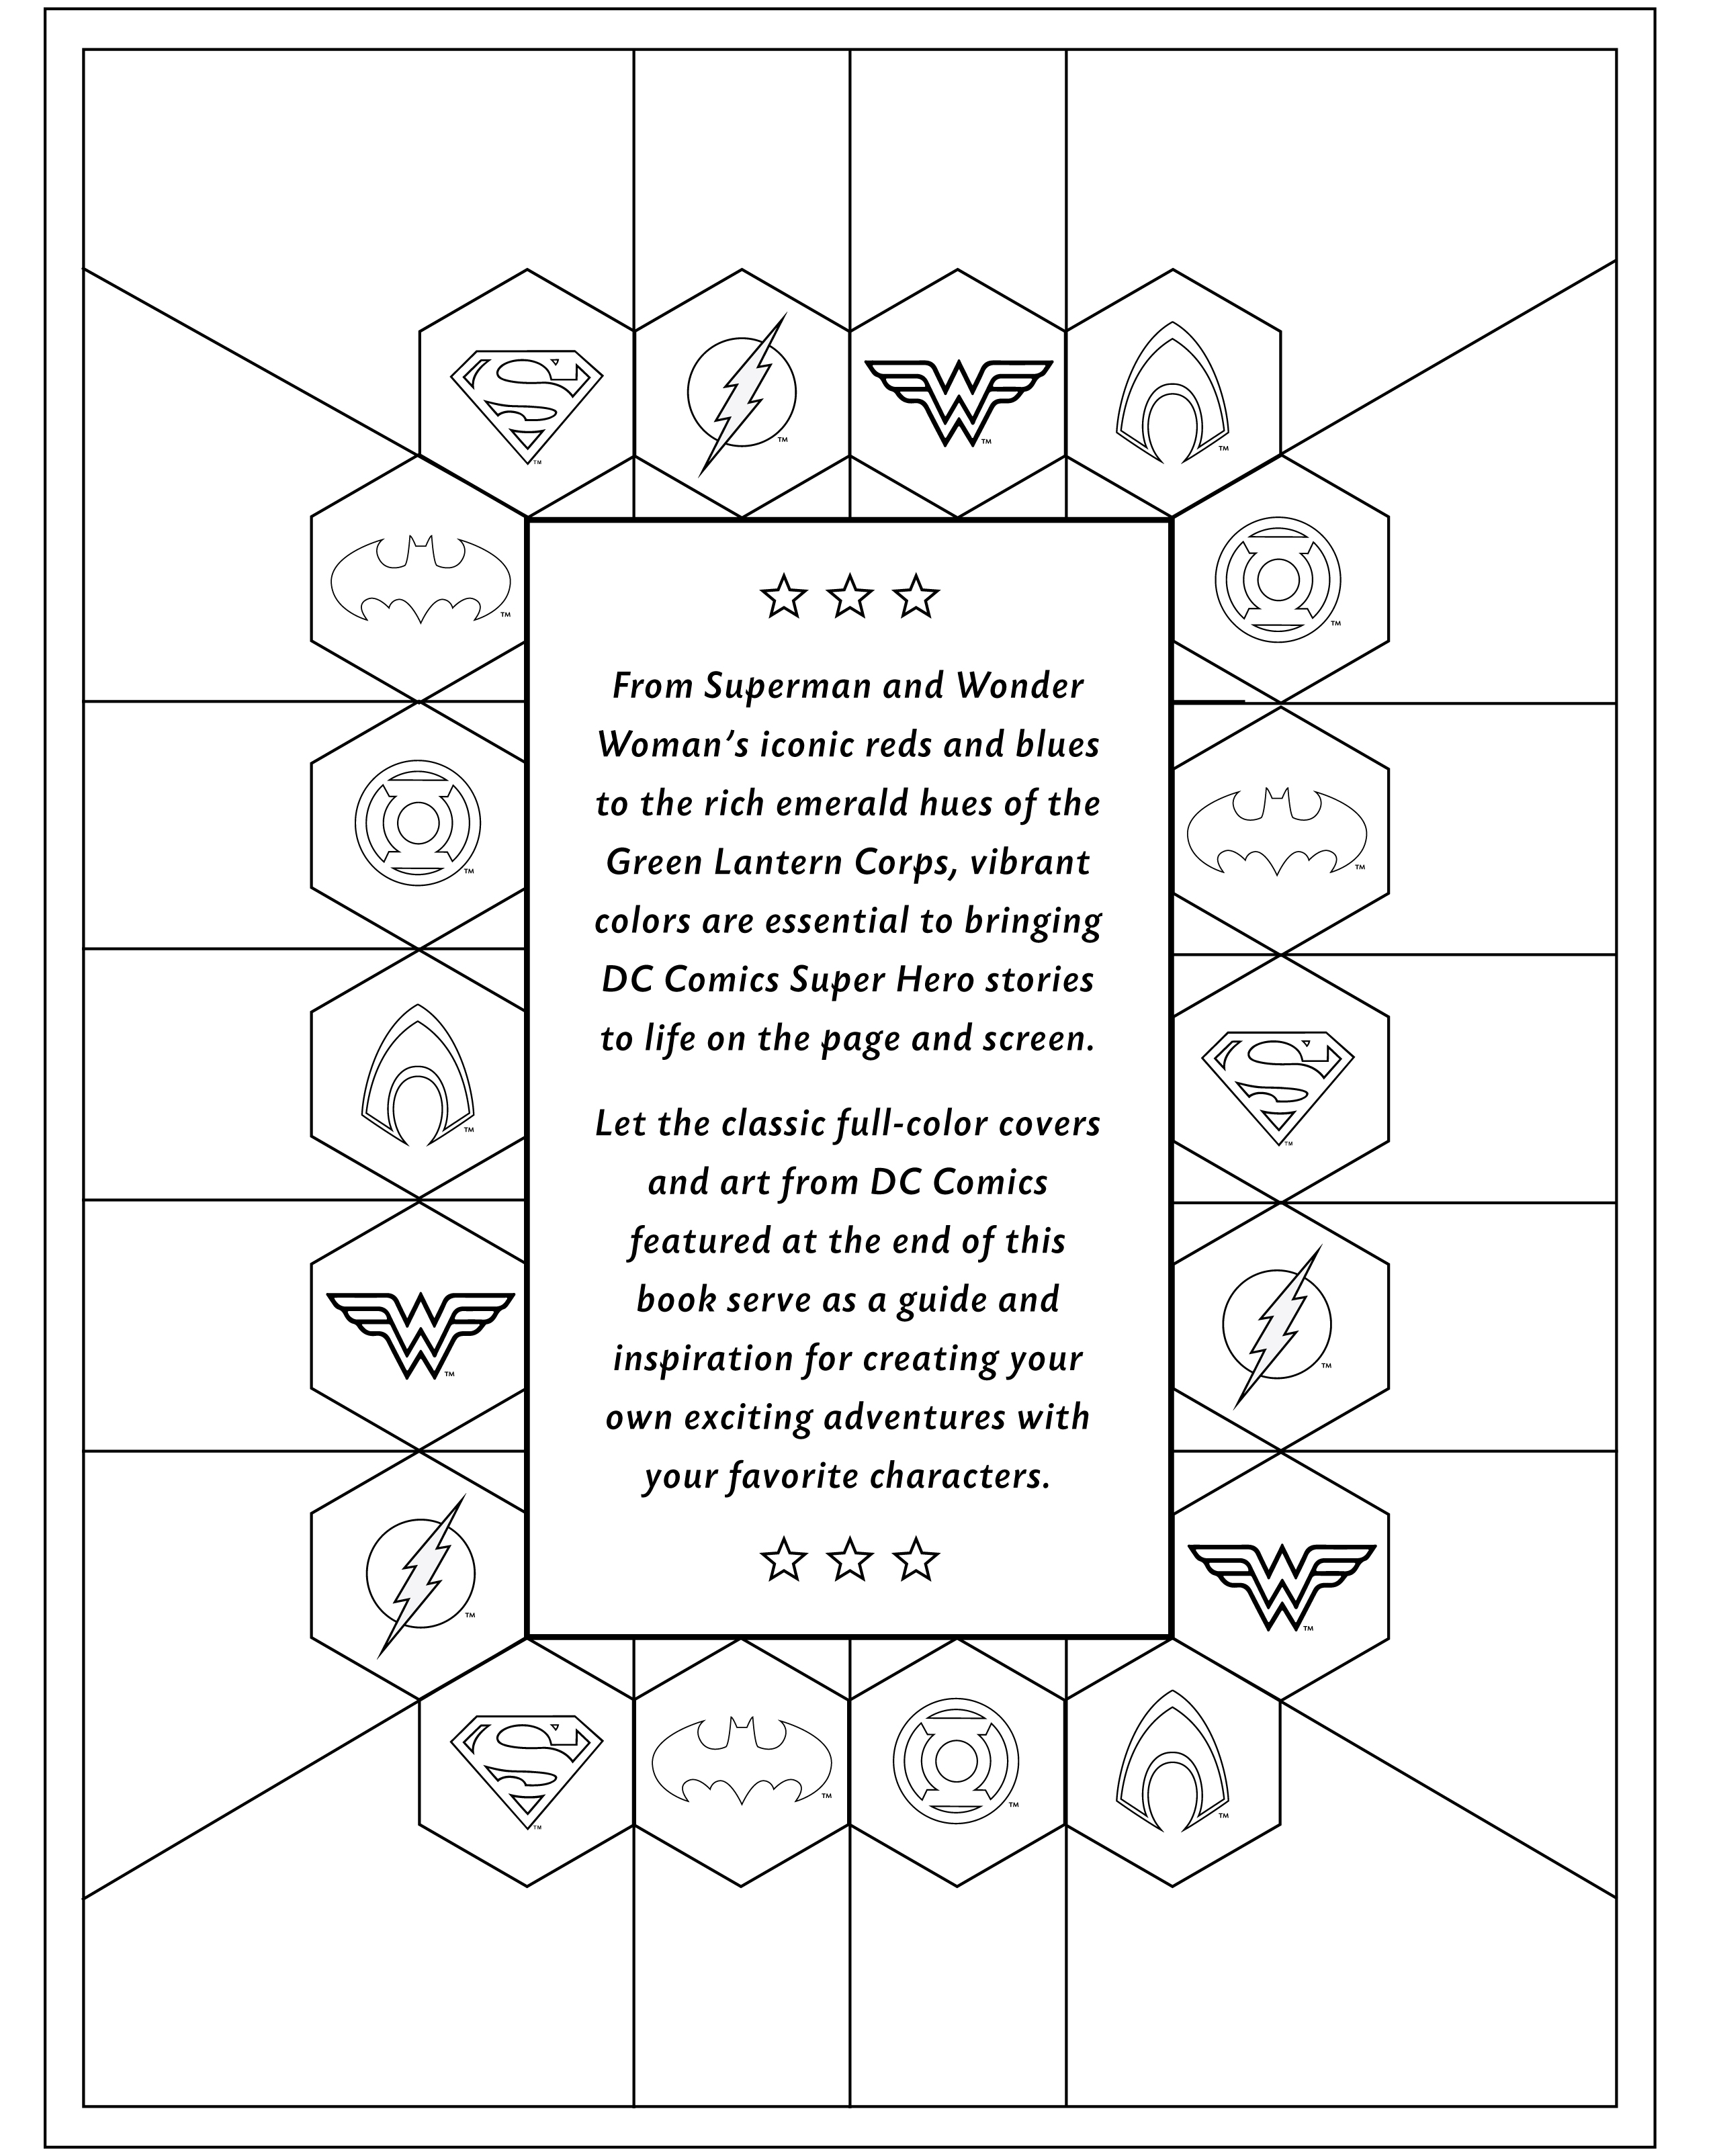 2 1g 25503210 Comic Book Hero Symbols Logos Pinterest